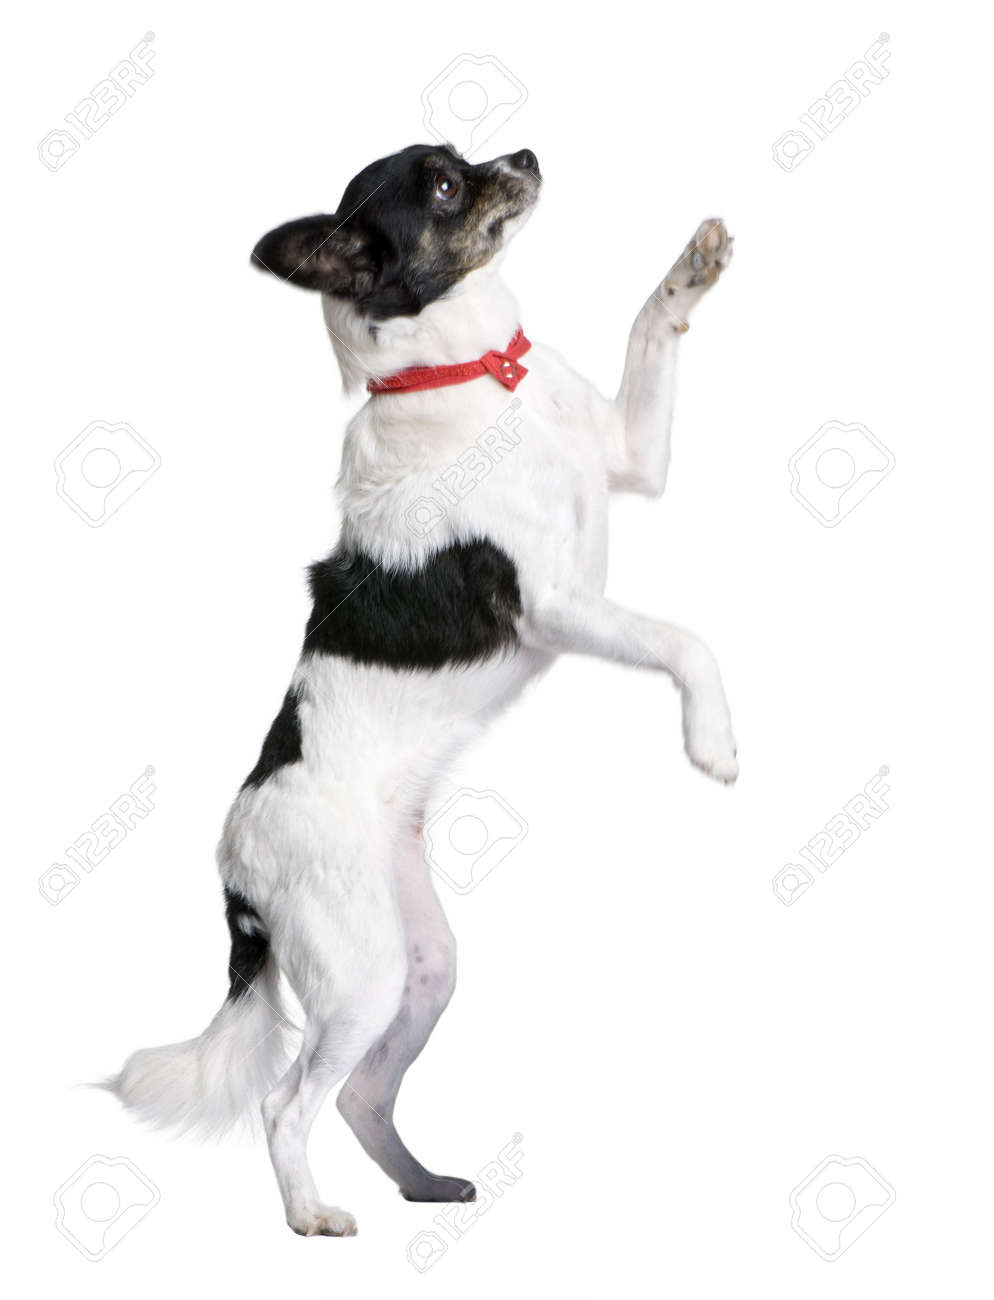 Bastard dog in red handkerchief walking on hind legs in front of white background, studio shot Stock Photo - 5912077